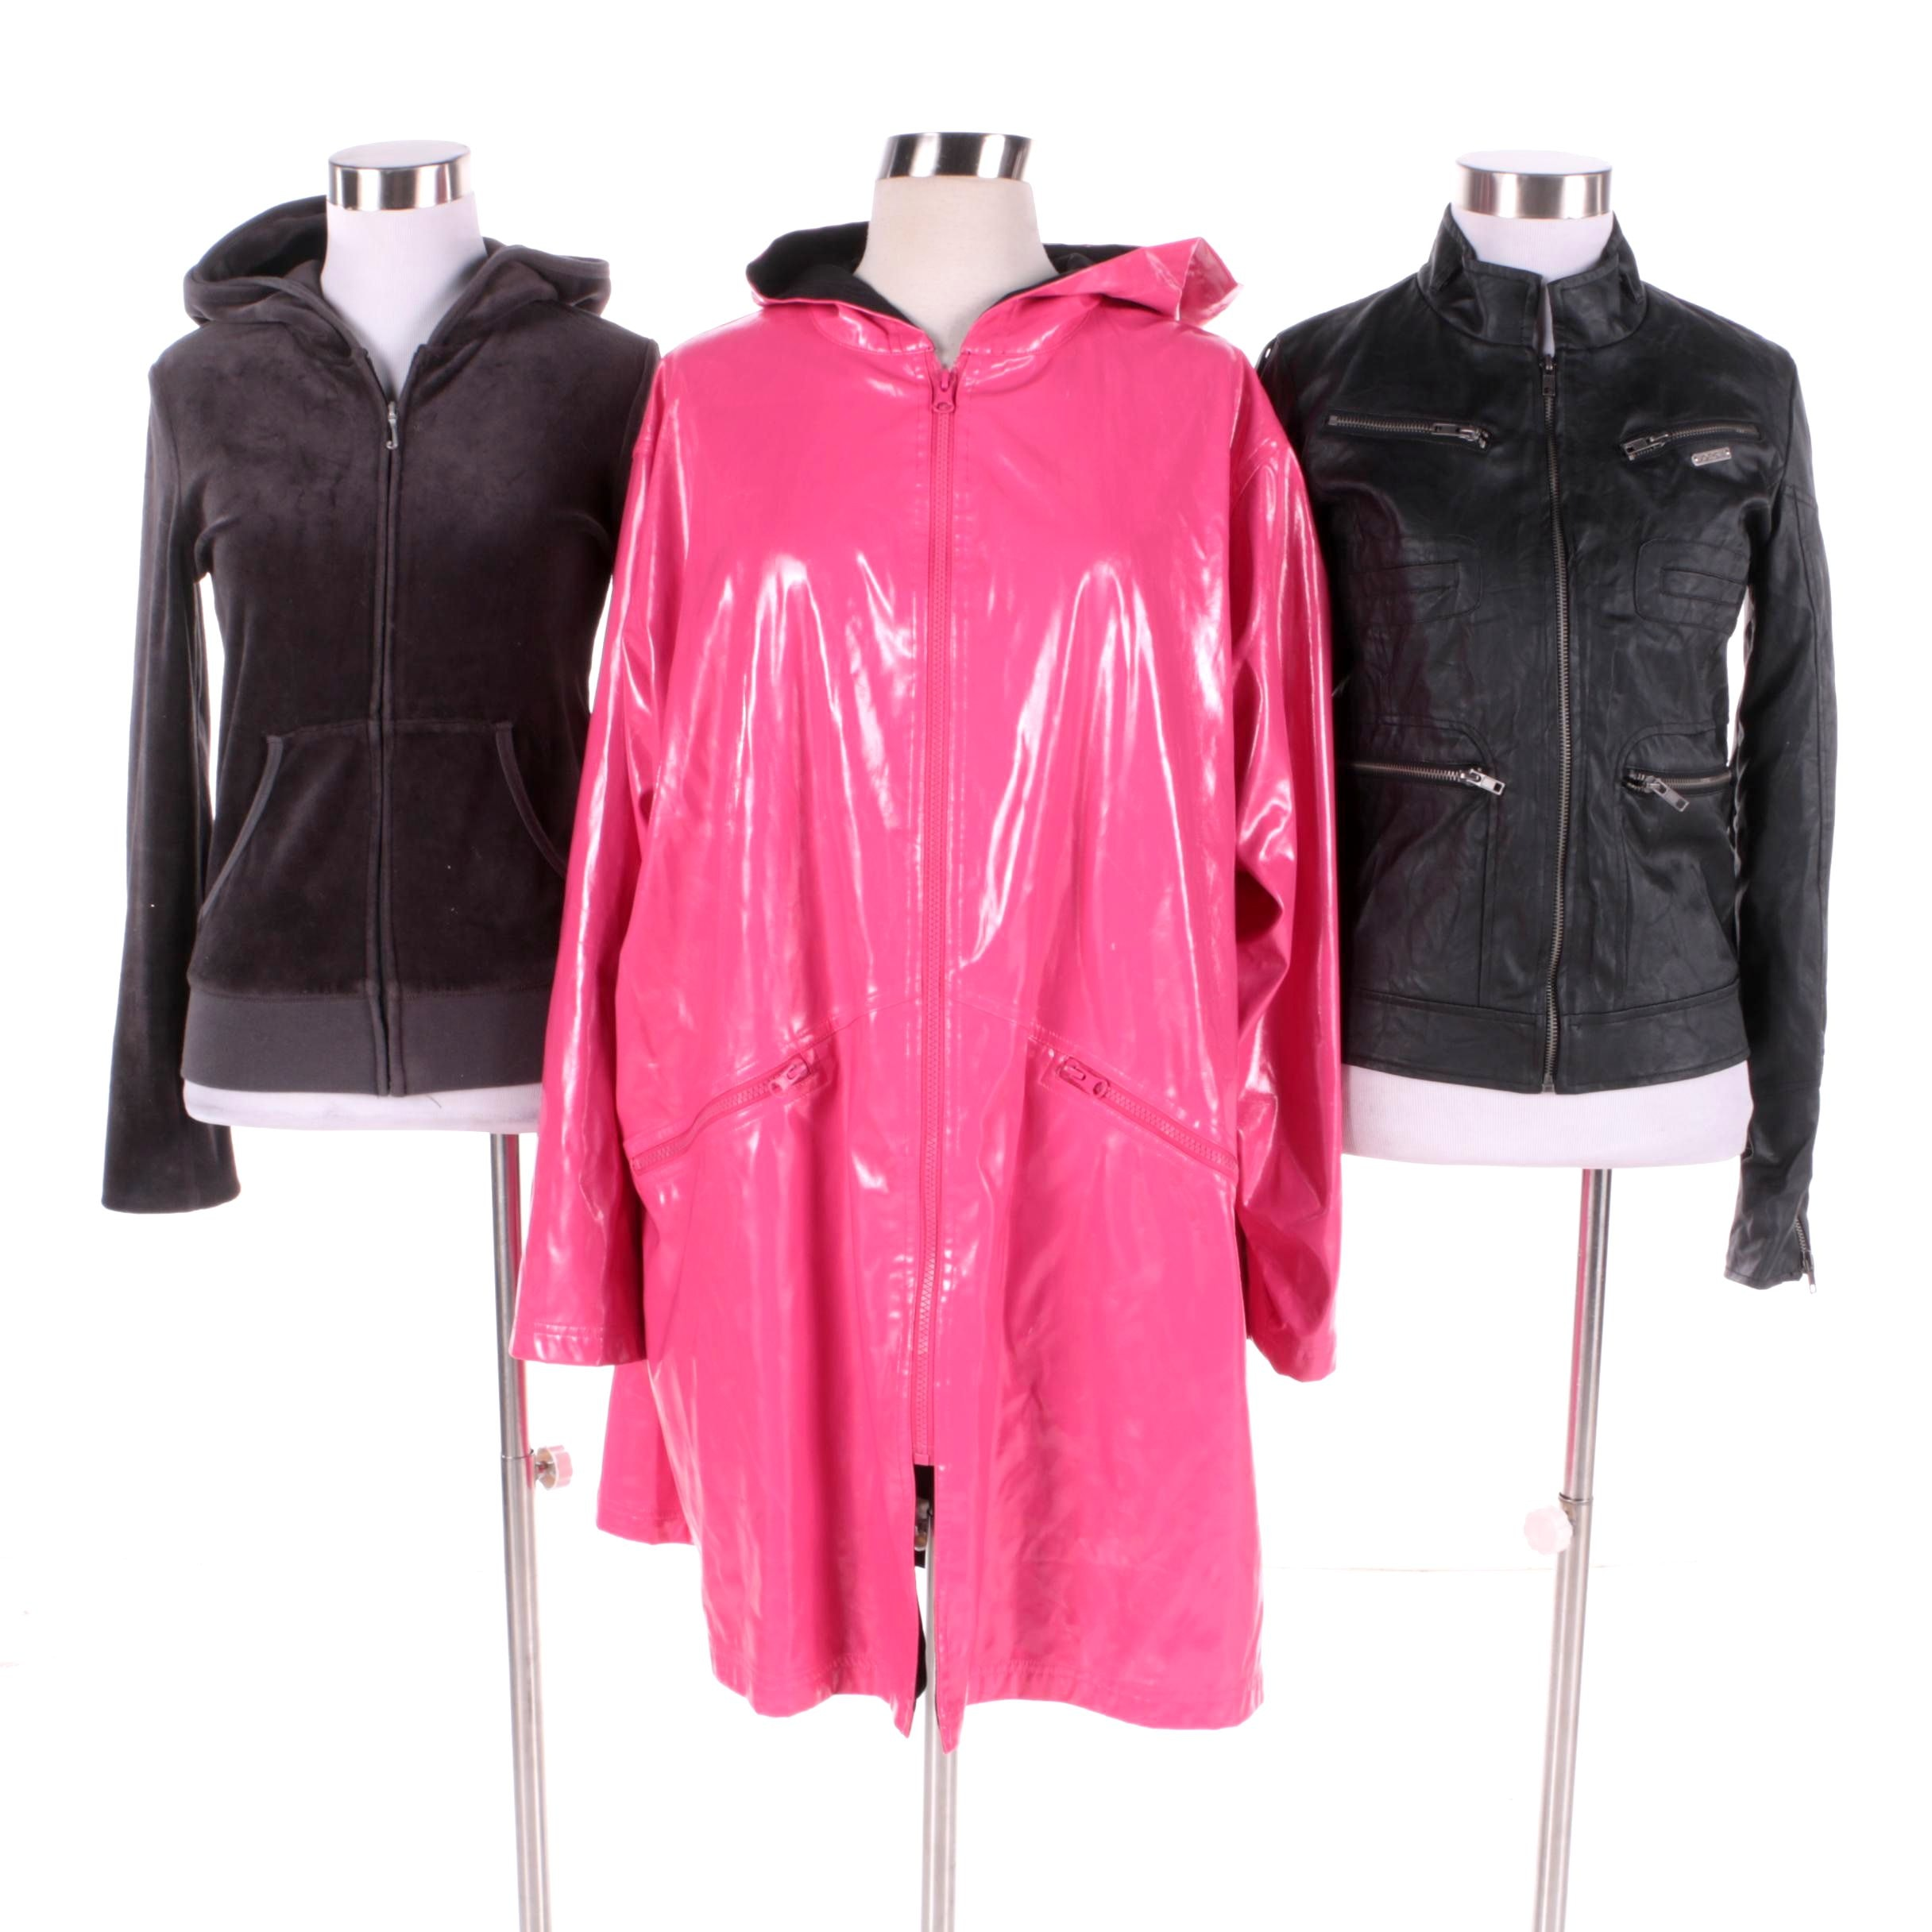 Women's Jackets and Raincoat Including Juicy Couture